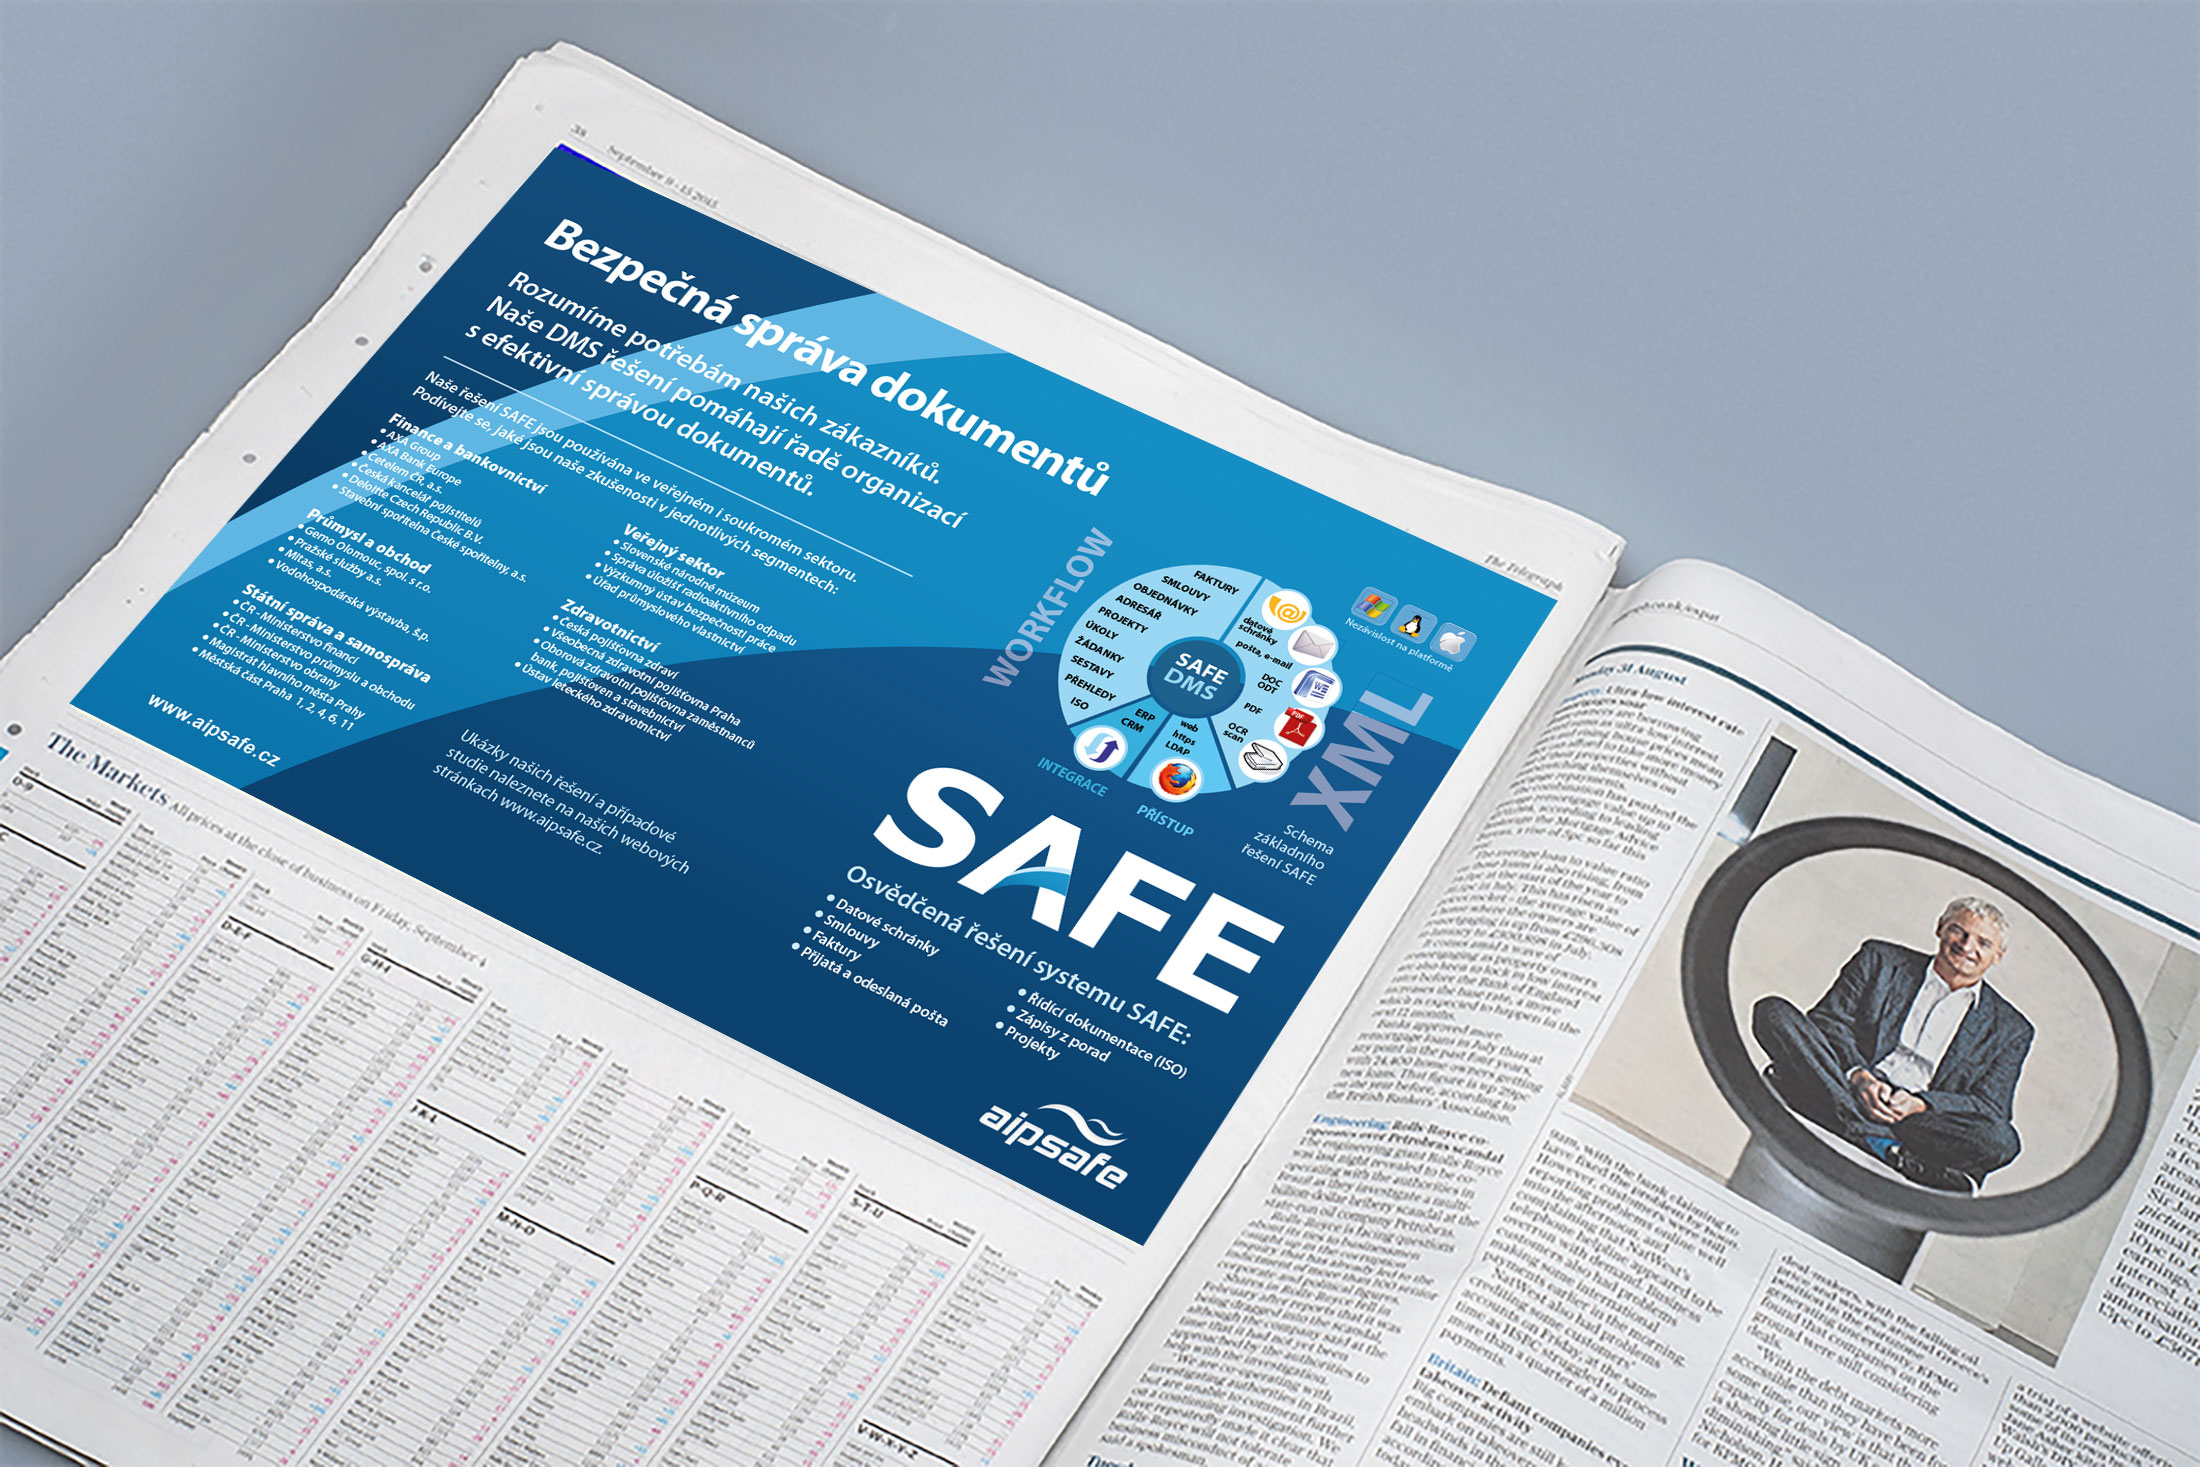 aip-safe-news